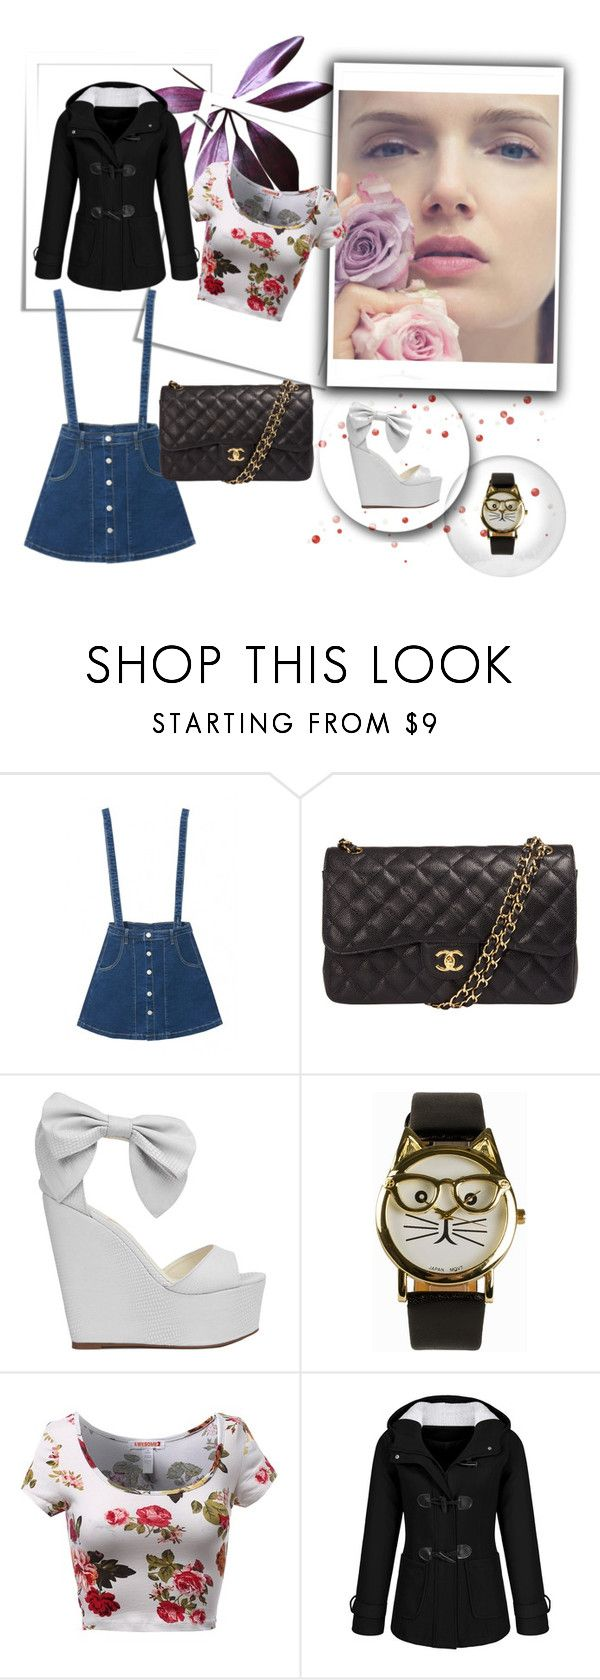 """""""Pretty"""" by pipsqueak24 on Polyvore featuring Chanel, Privileged by J.C. Dossier, JFR, women's clothing, women's fashion, women, female, woman, misses and juniors"""